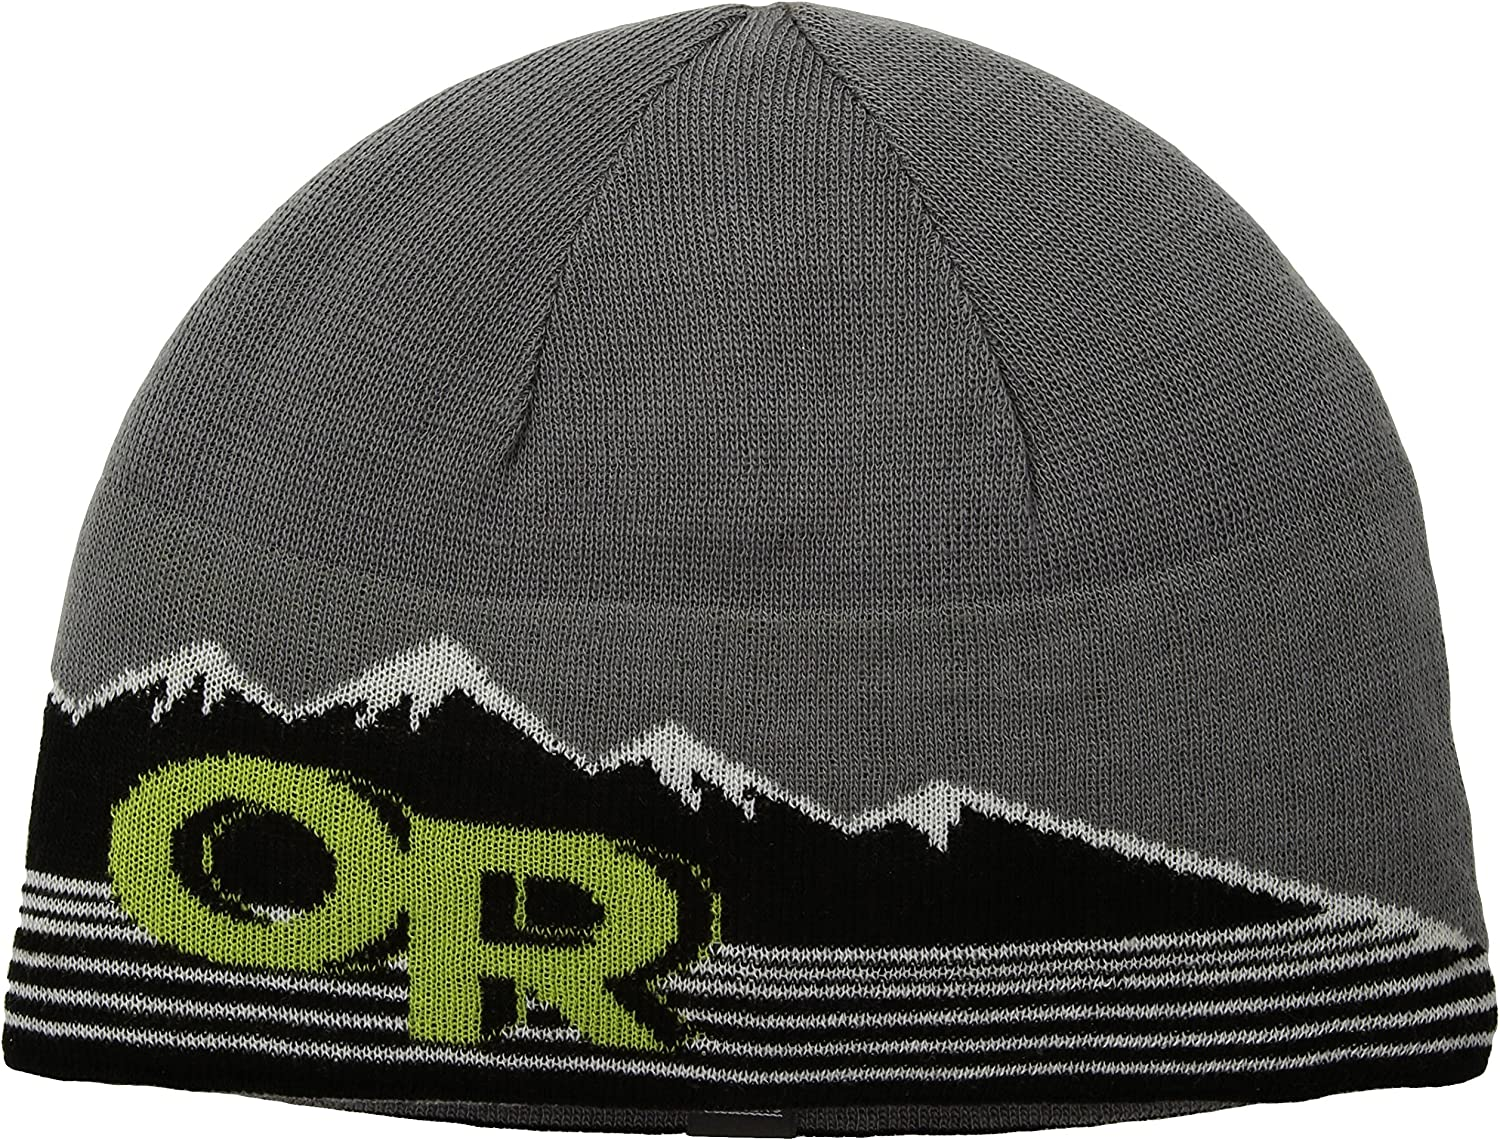 Outdoor Research Reservation Phoenix Mall Beanie